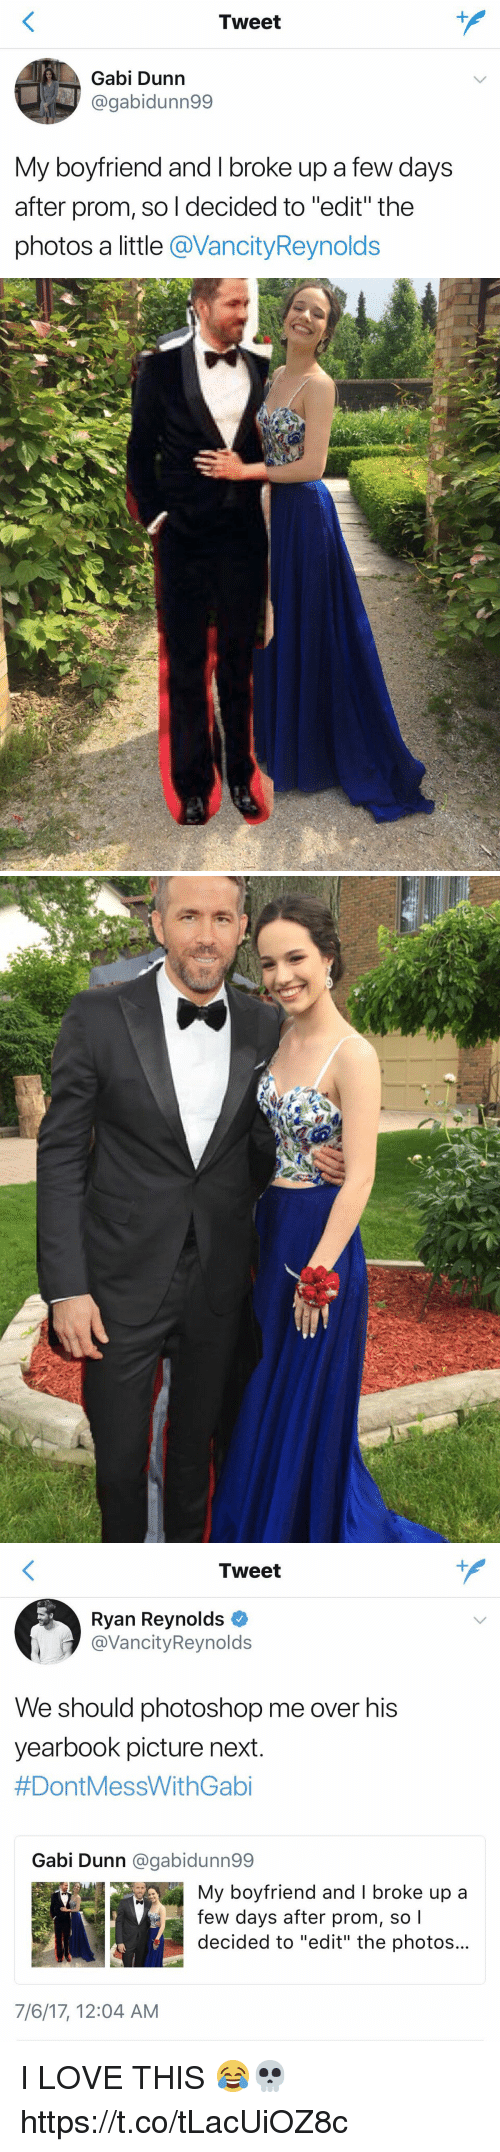 "Gaby: Tweet  Gabi Dunn  @gabidunn99  My boyfriend and I broke up a few days  after prom, so l decided to ""edit"" the  photos a little @VancityReynolds   Tweet  Ryan Reynolds  @VancityReynolds  We should photoshop me over his  yearbook picture next  #DontMessWithGabi  Gabi Dunn @gabidunn99  My boyfriend and I broke up a  few days after prom, so l  decided to ""edit"" the photos...  7/6/17, 12:04 AM I LOVE THIS 😂💀 https://t.co/tLacUiOZ8c"